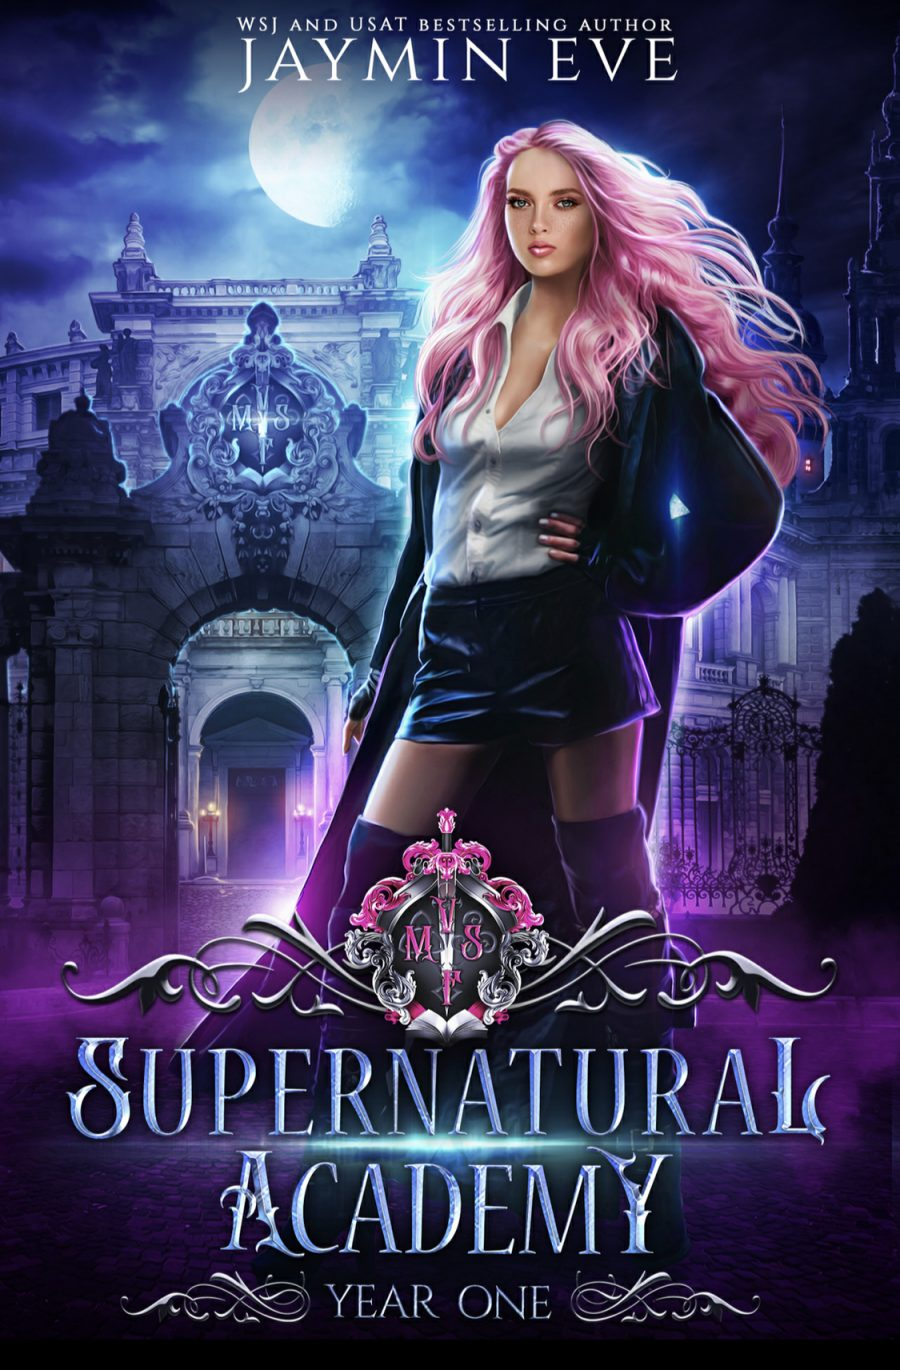 Supernatural Academy: Year One by Jaymin Eve - A Book Review #BookReview #UF #UrbanFantasy #Academy #School #Supernatural